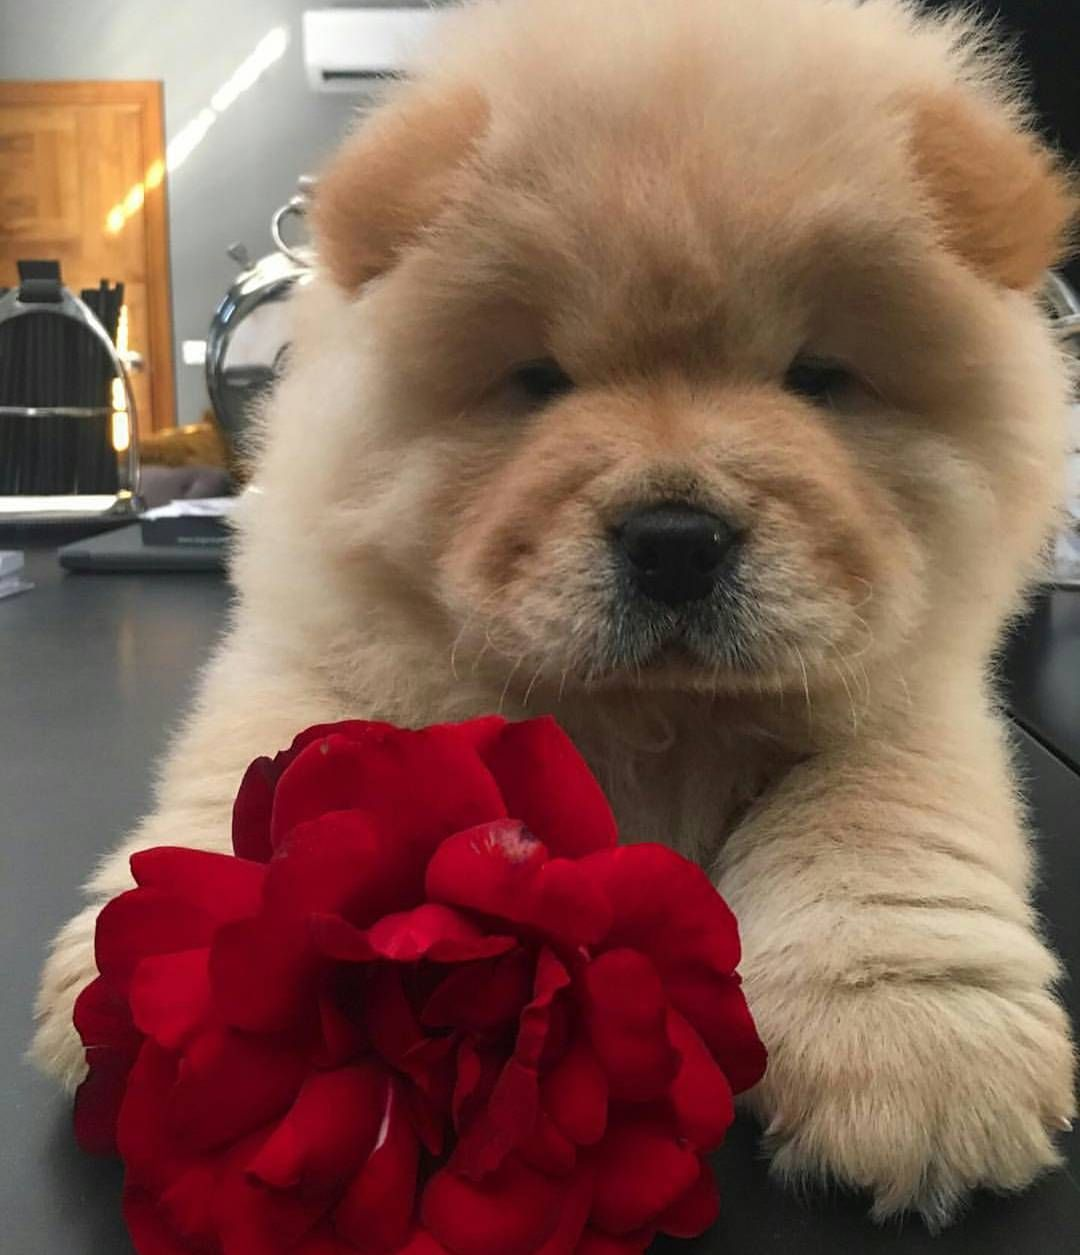 Chow Chow Cute Dogs Cute Animals Fluffy Dogs